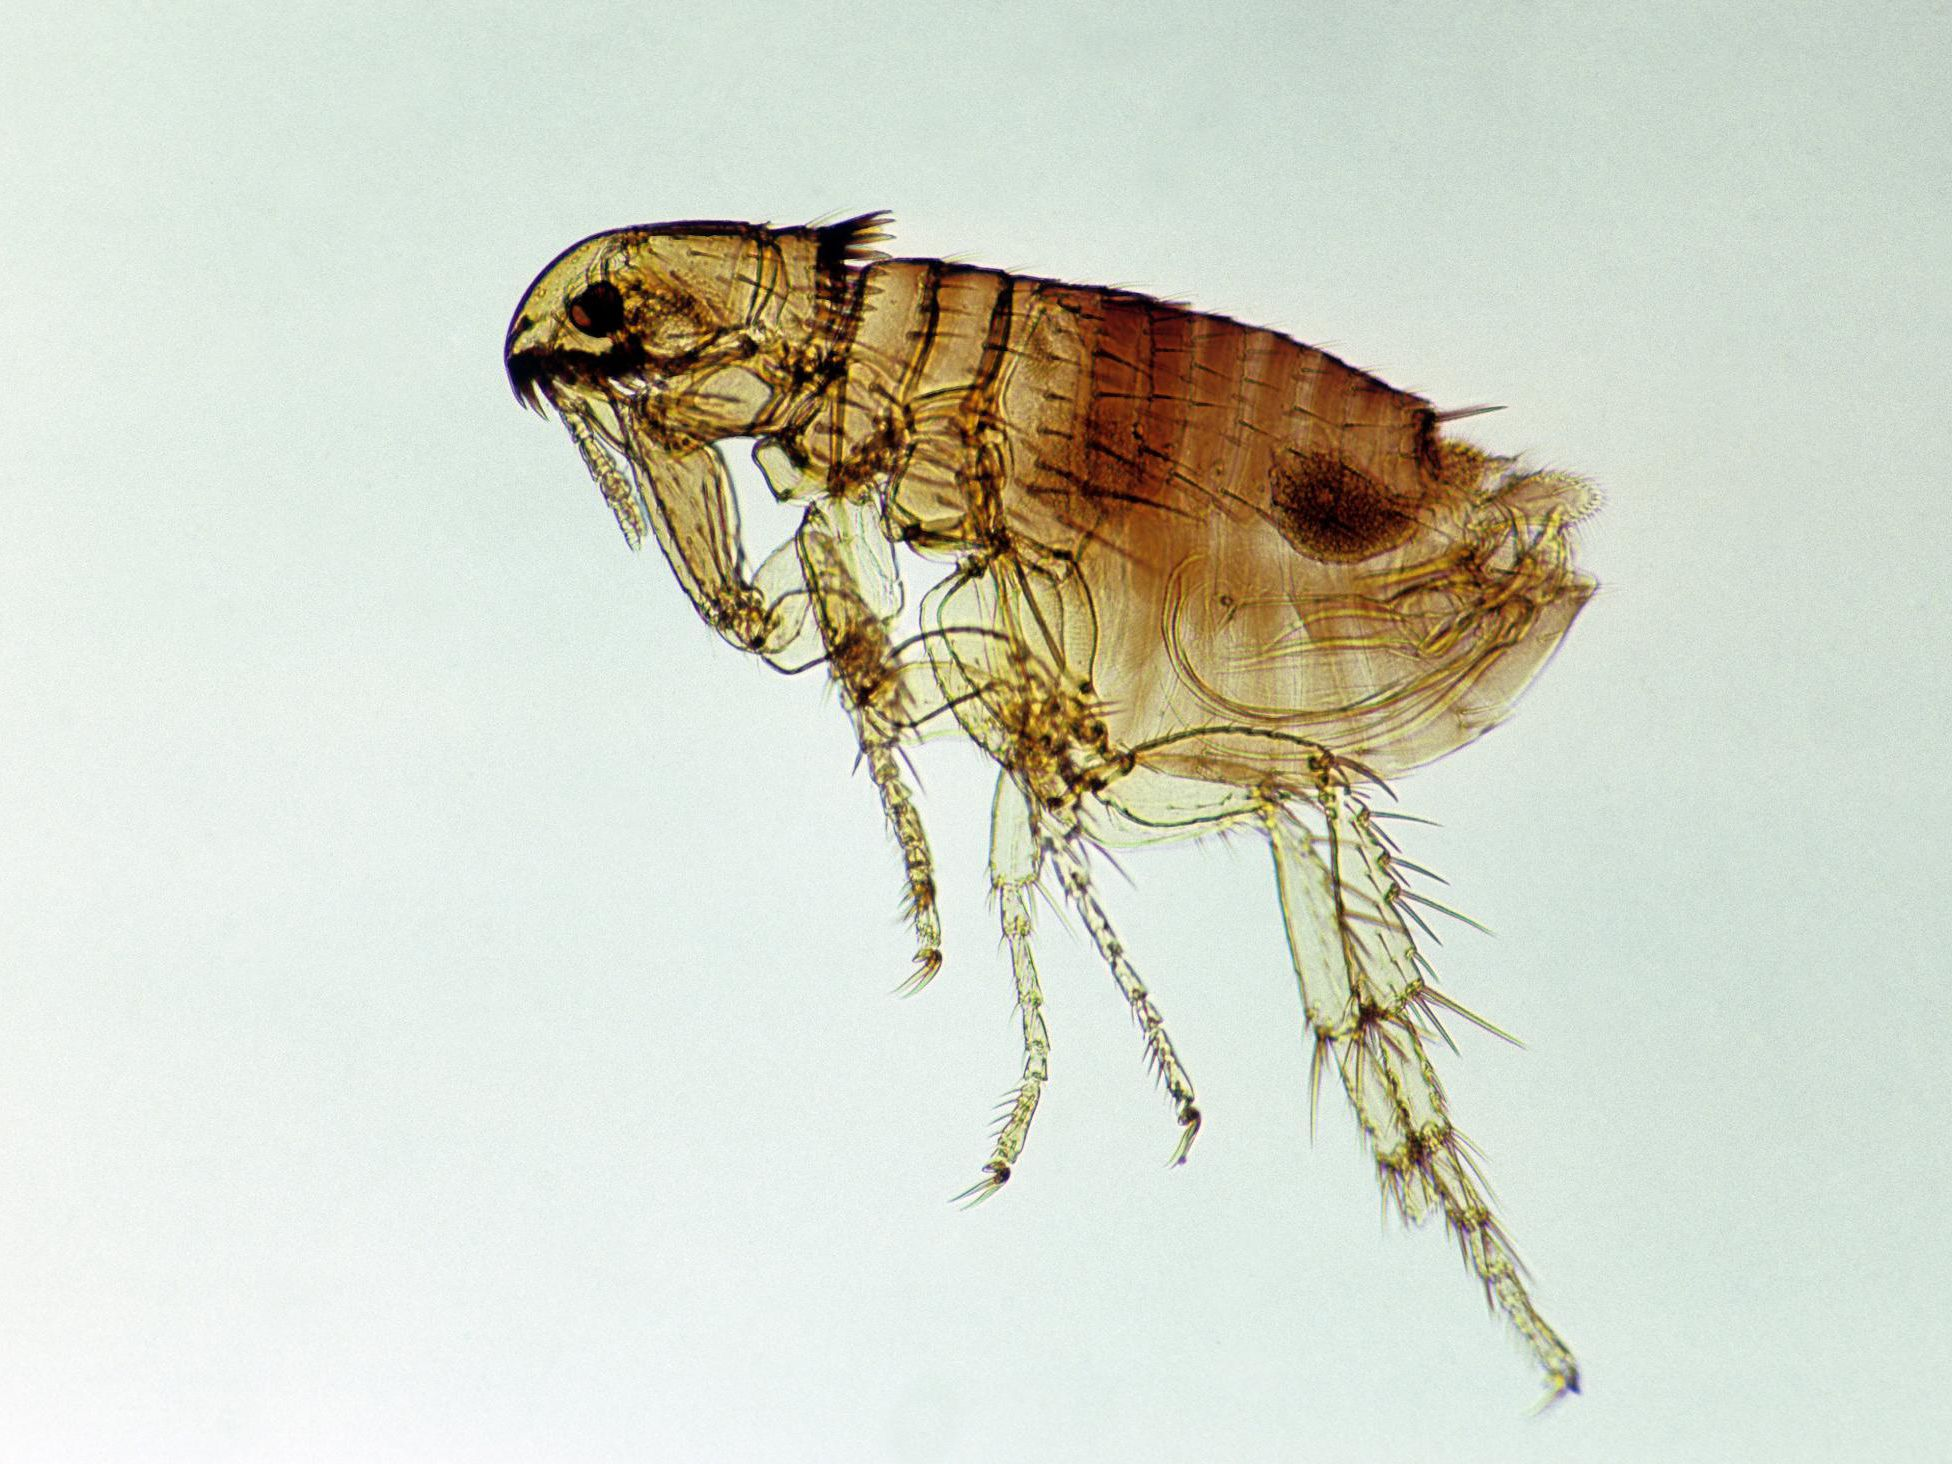 The Life Cycle And Dangers Of Fleas